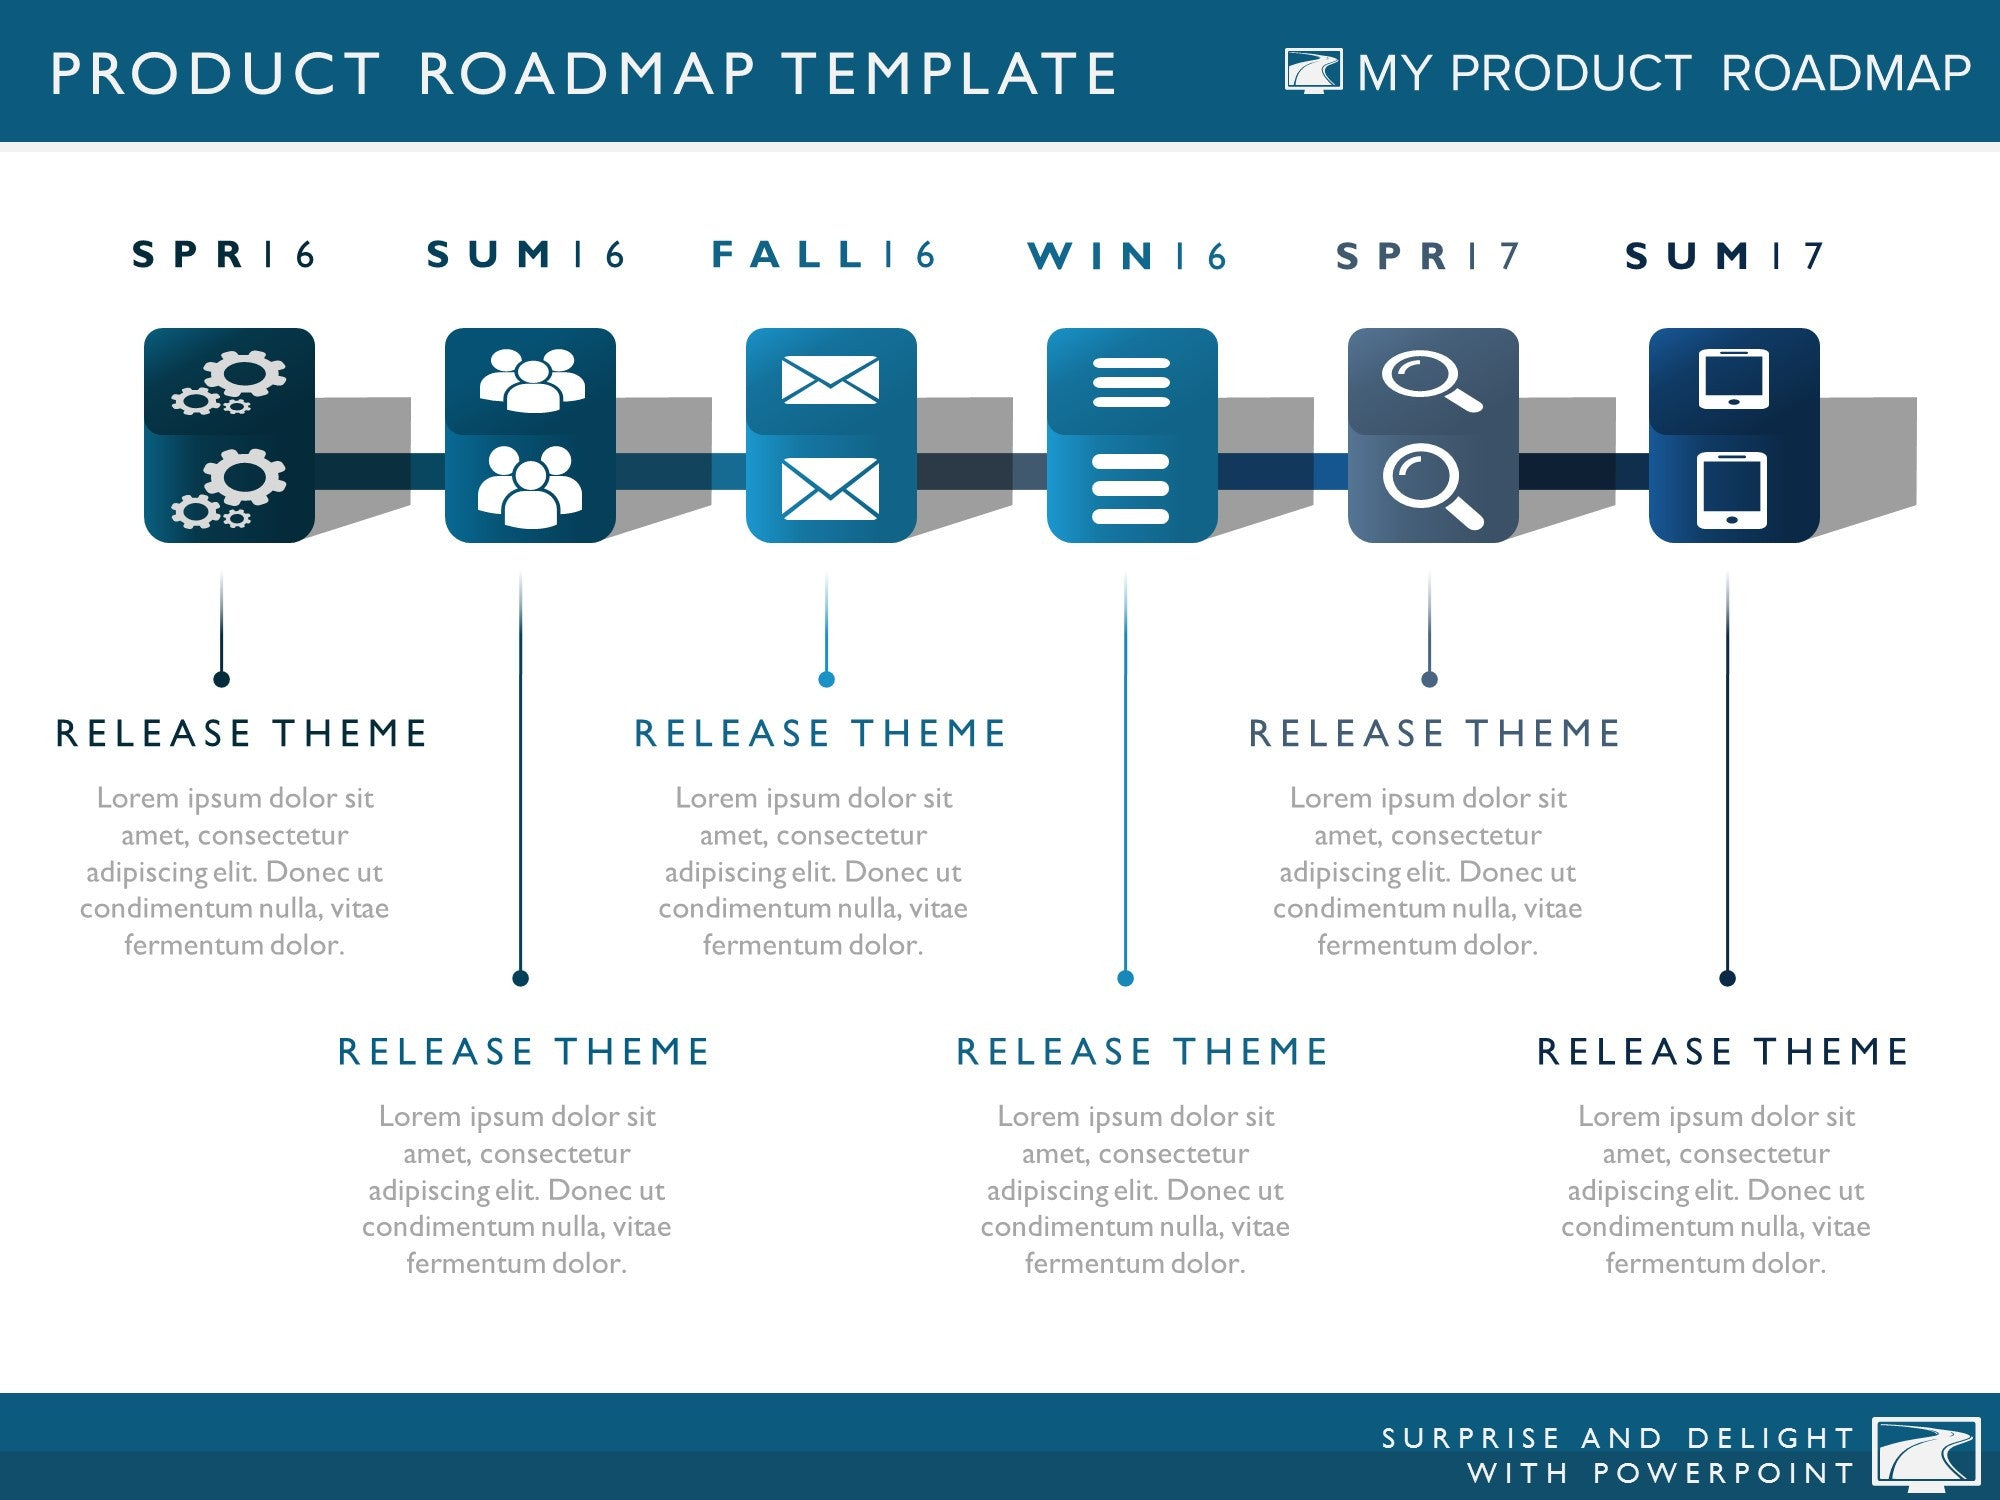 Product Roadmap Templates For Powerpoint - Website roadmap template